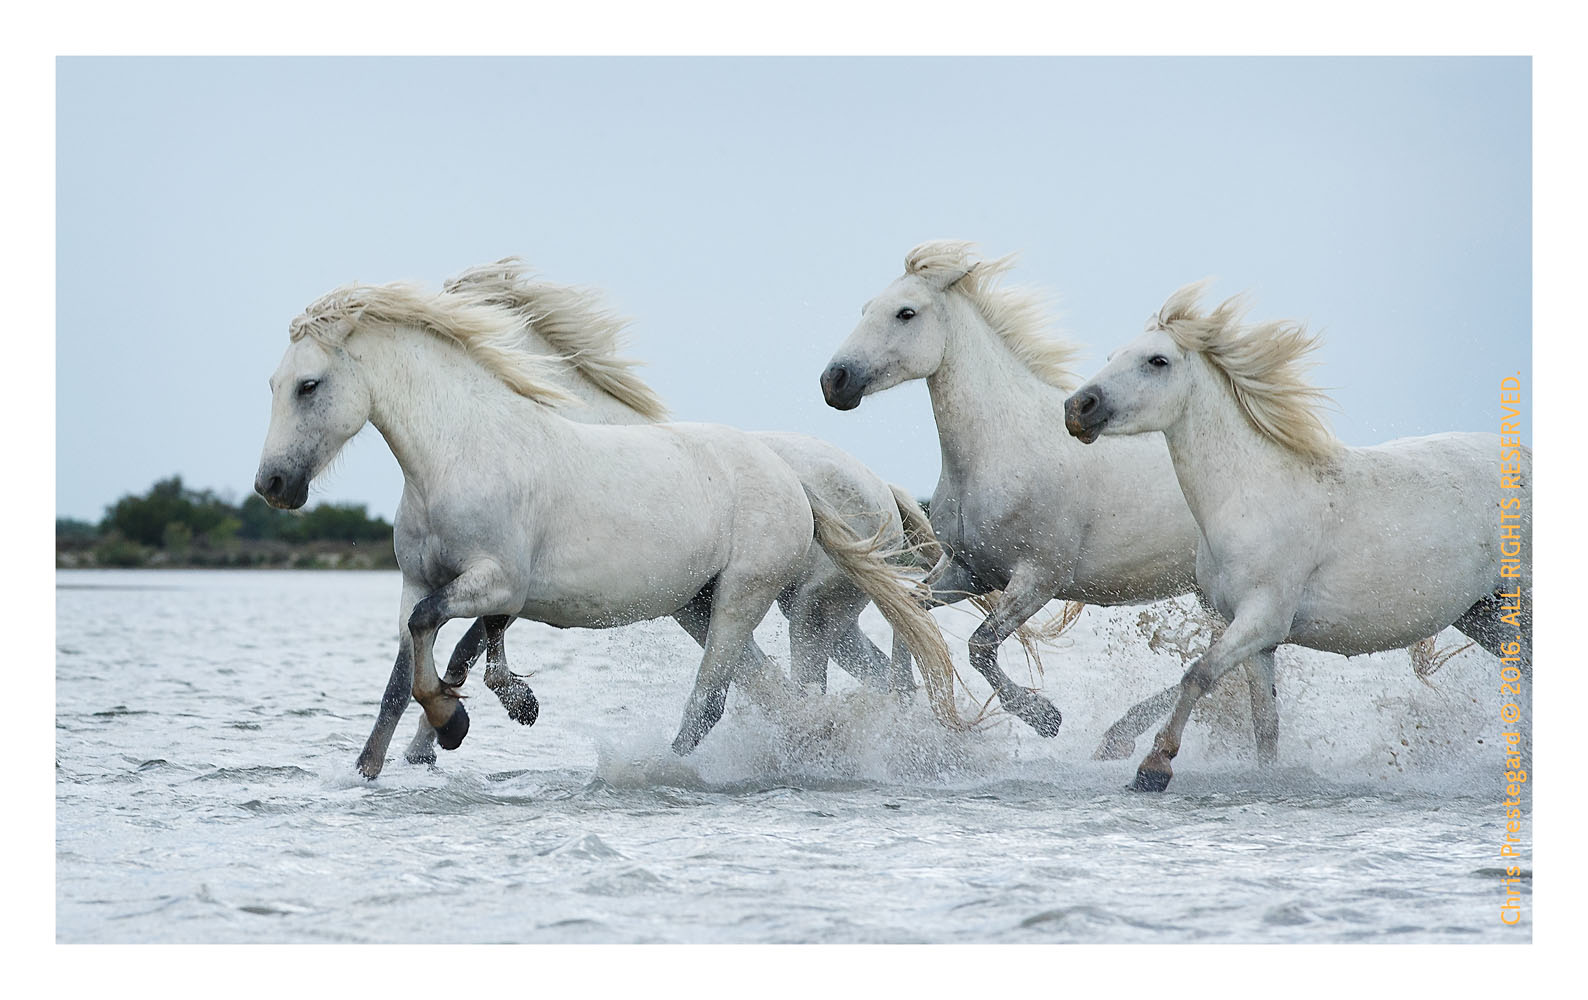 Camargue horses, Aigues Mortes, South of France, June 2016